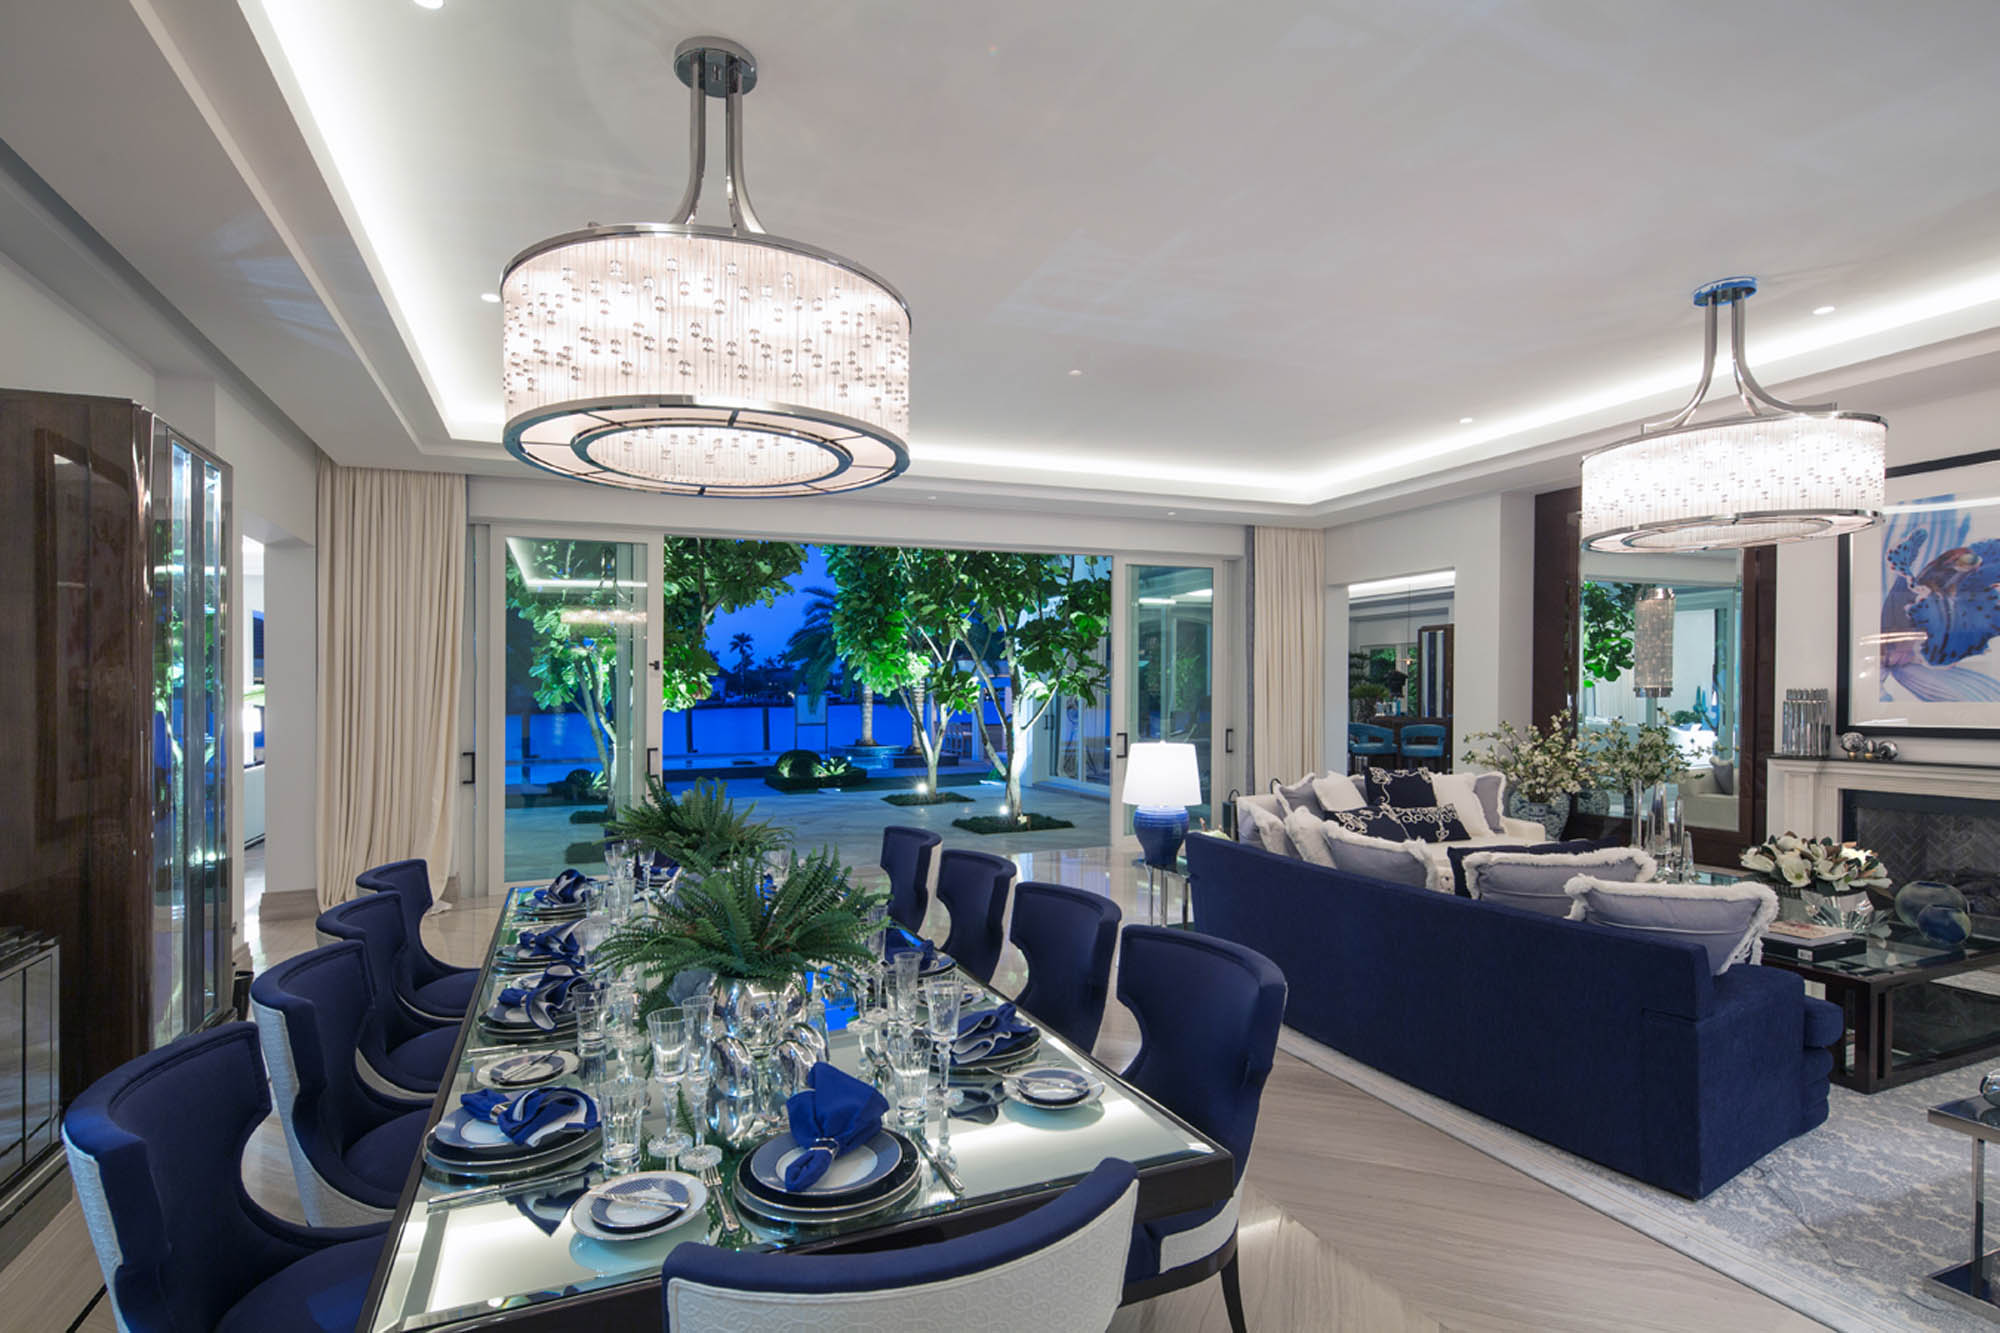 A residential living room lit with LED linear strip cove lighting and large drumb chandeliers, open to an outdoor courtyard at dusk. Boca Fisher